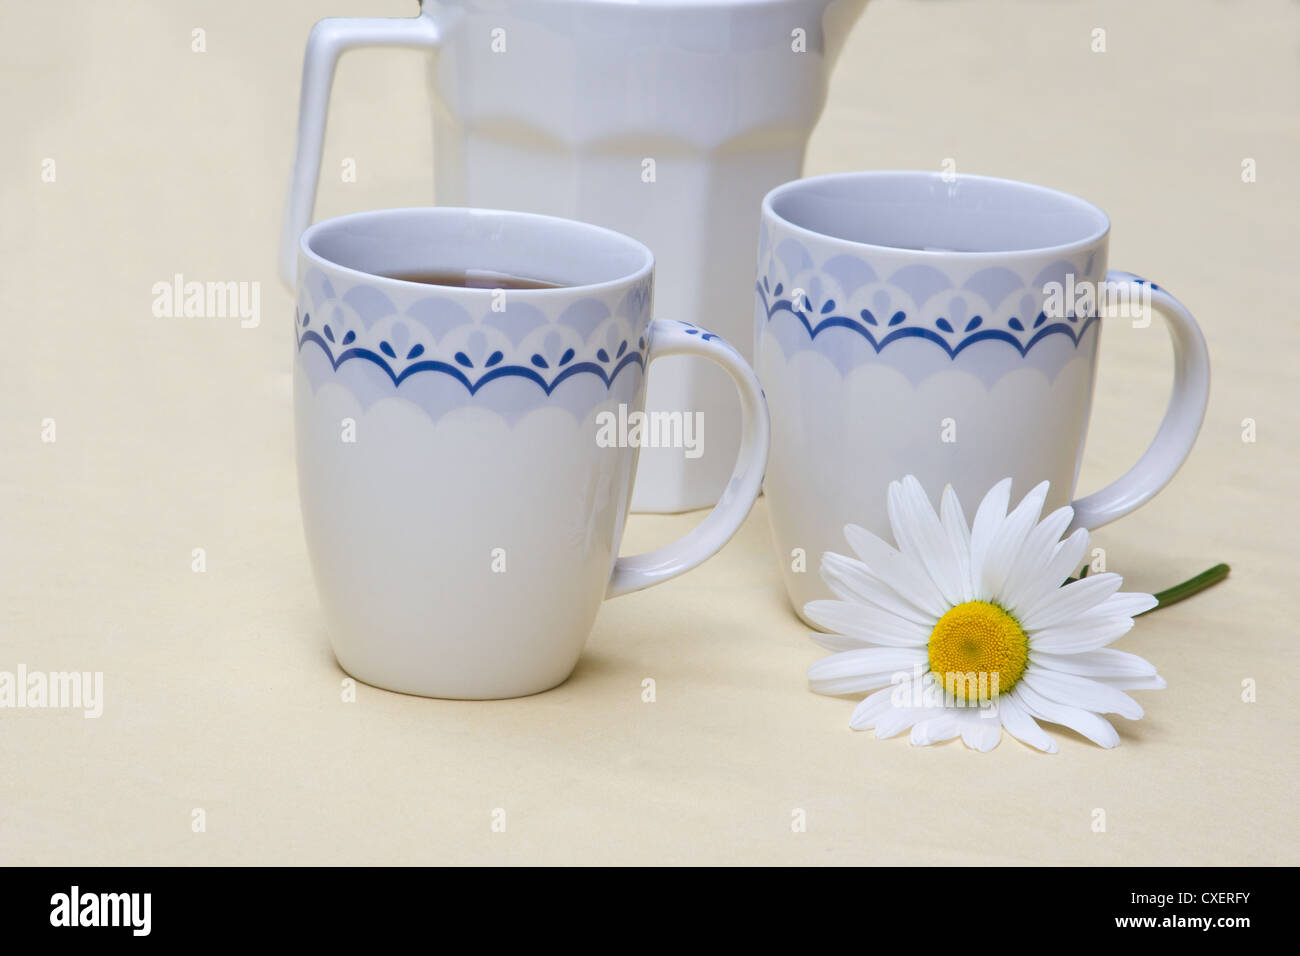 Two mugs of coffee, a jug of milk and a white daisy - Stock Image